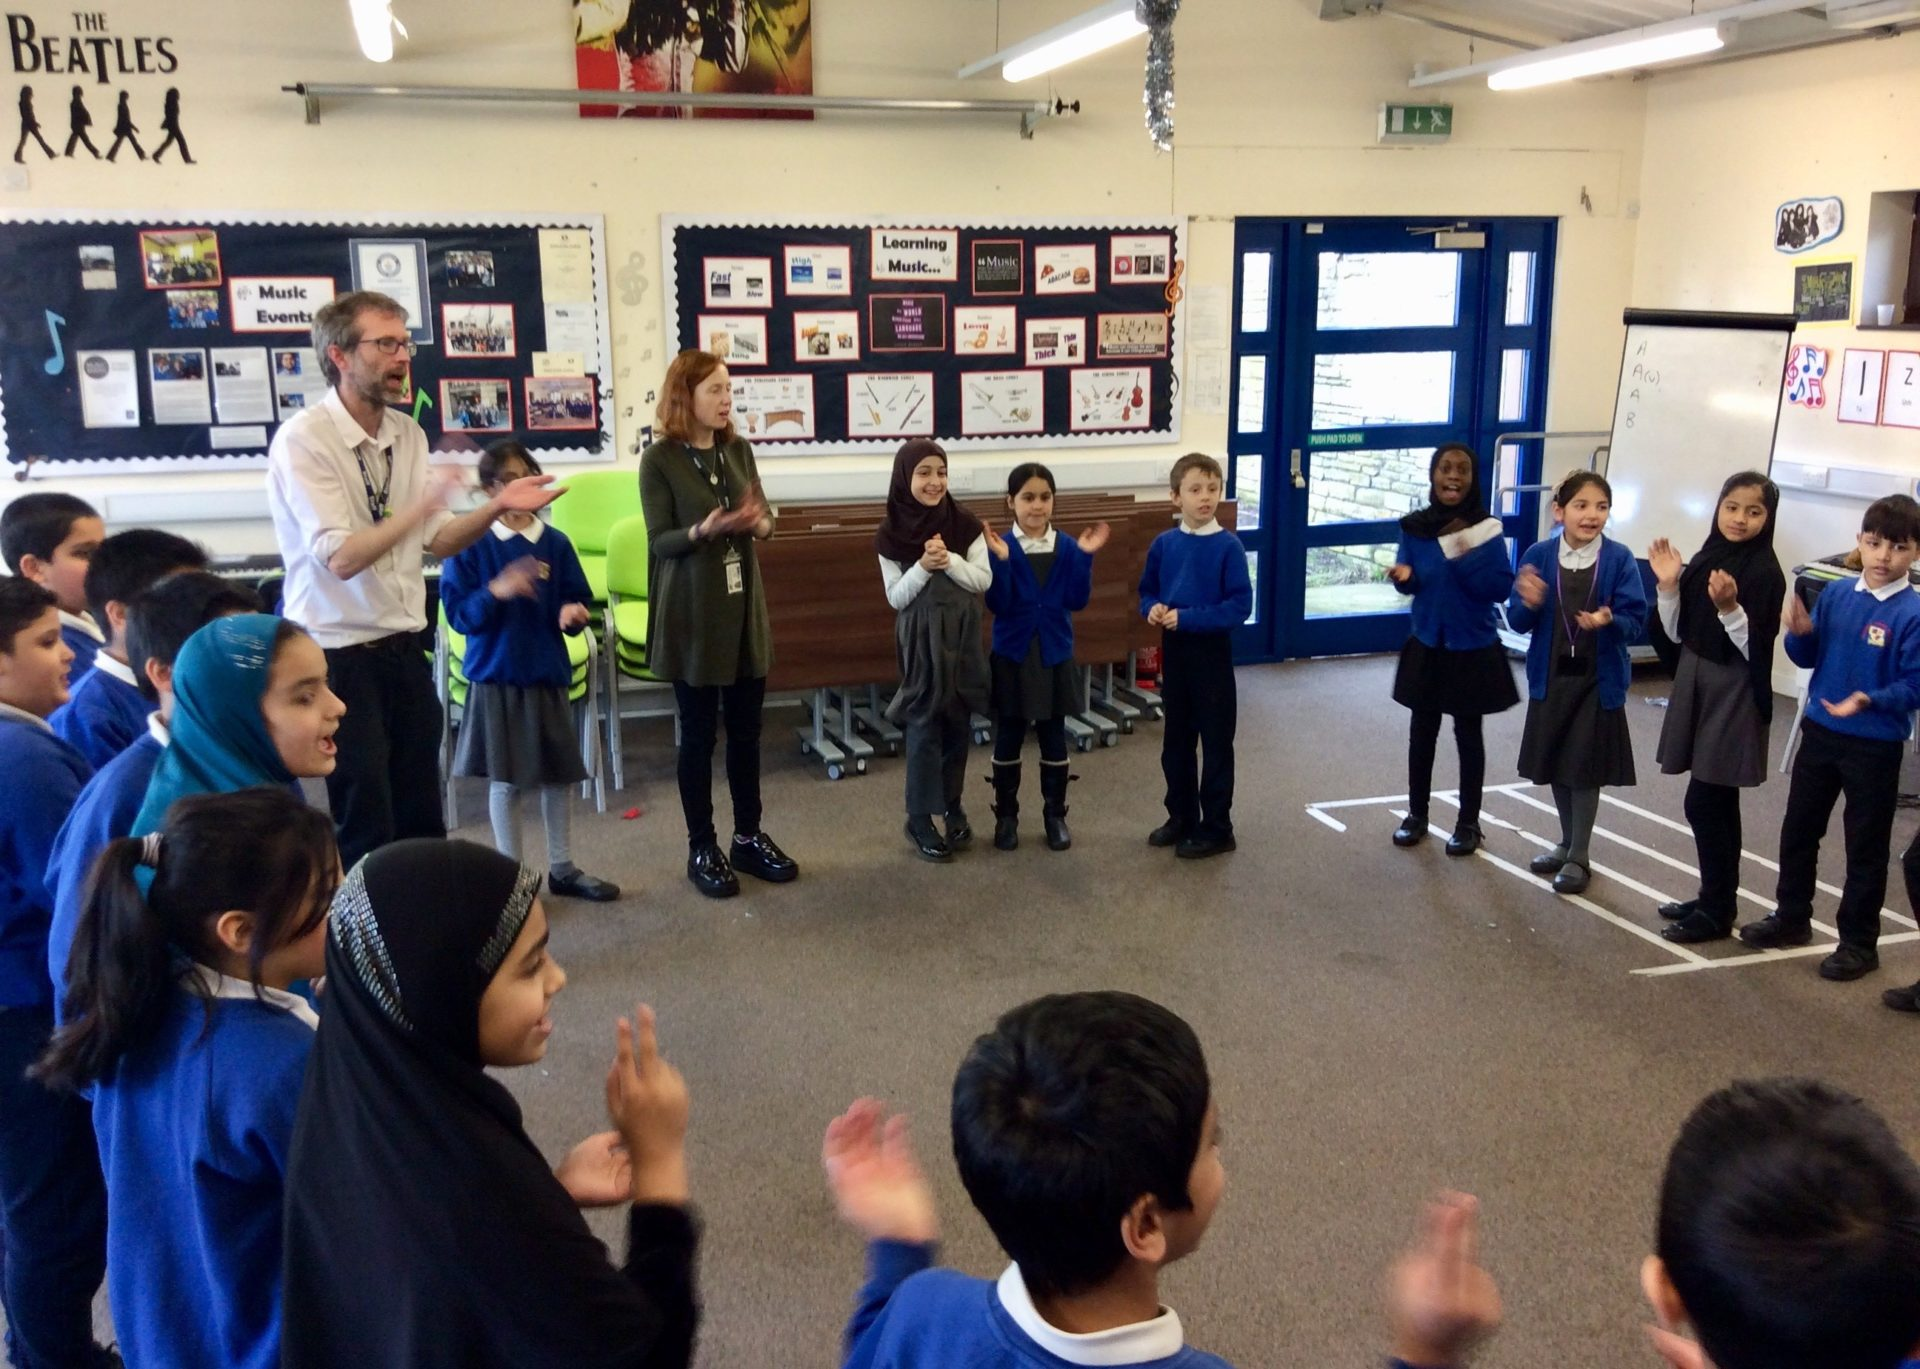 Feversham Primary School Case Study Children Clapping